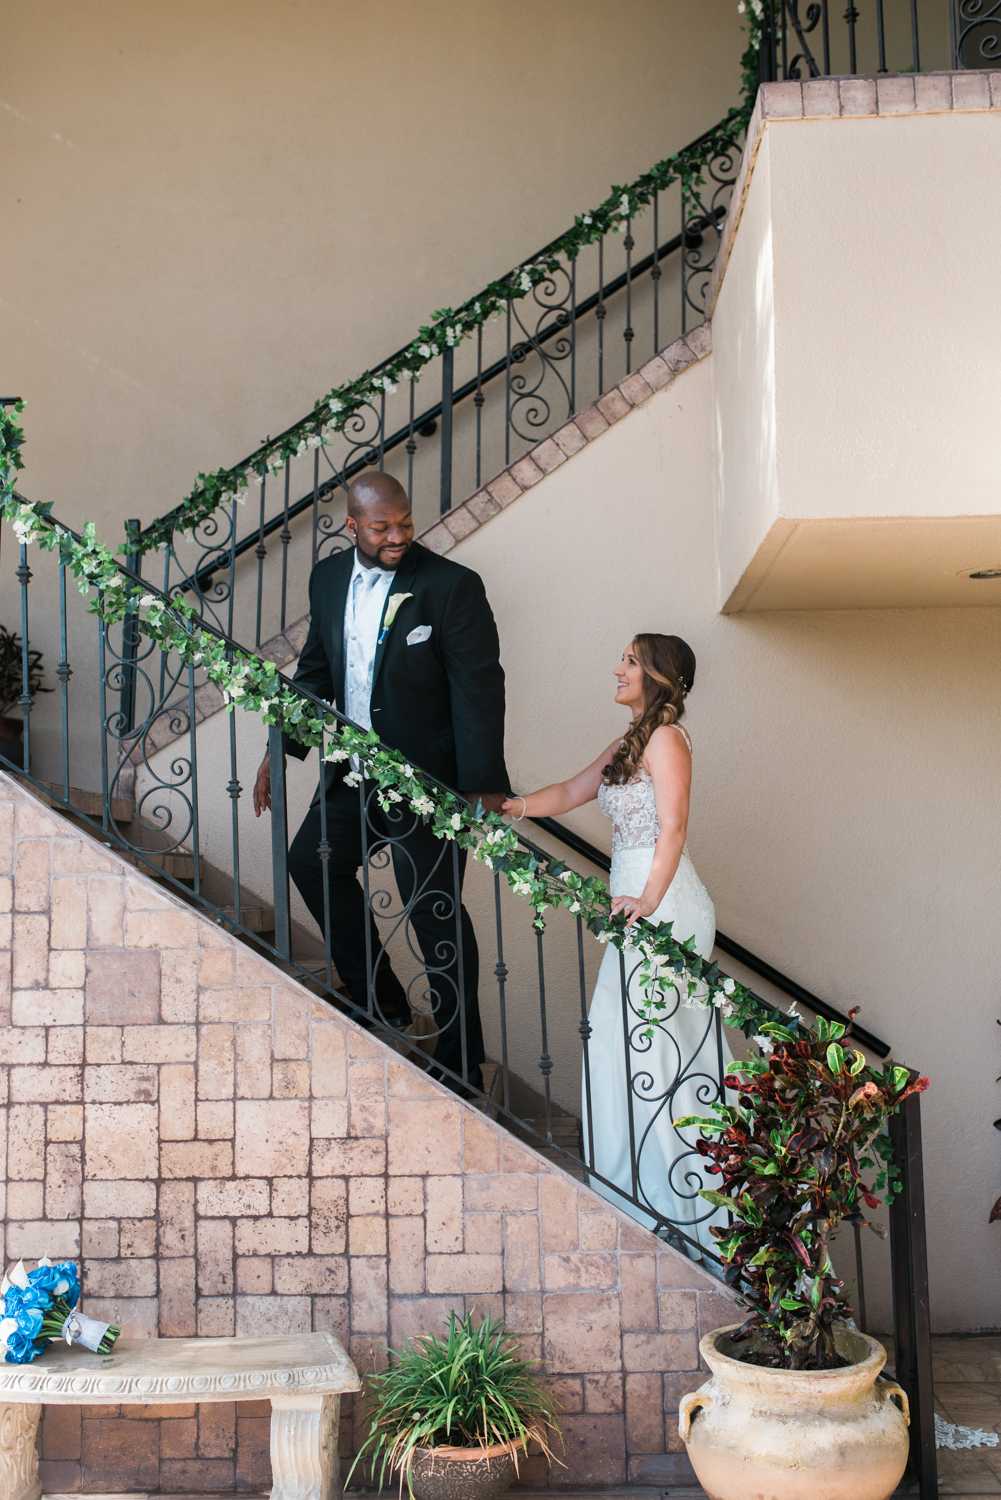 orlando wedding photographer rania marie photo-3.jpg